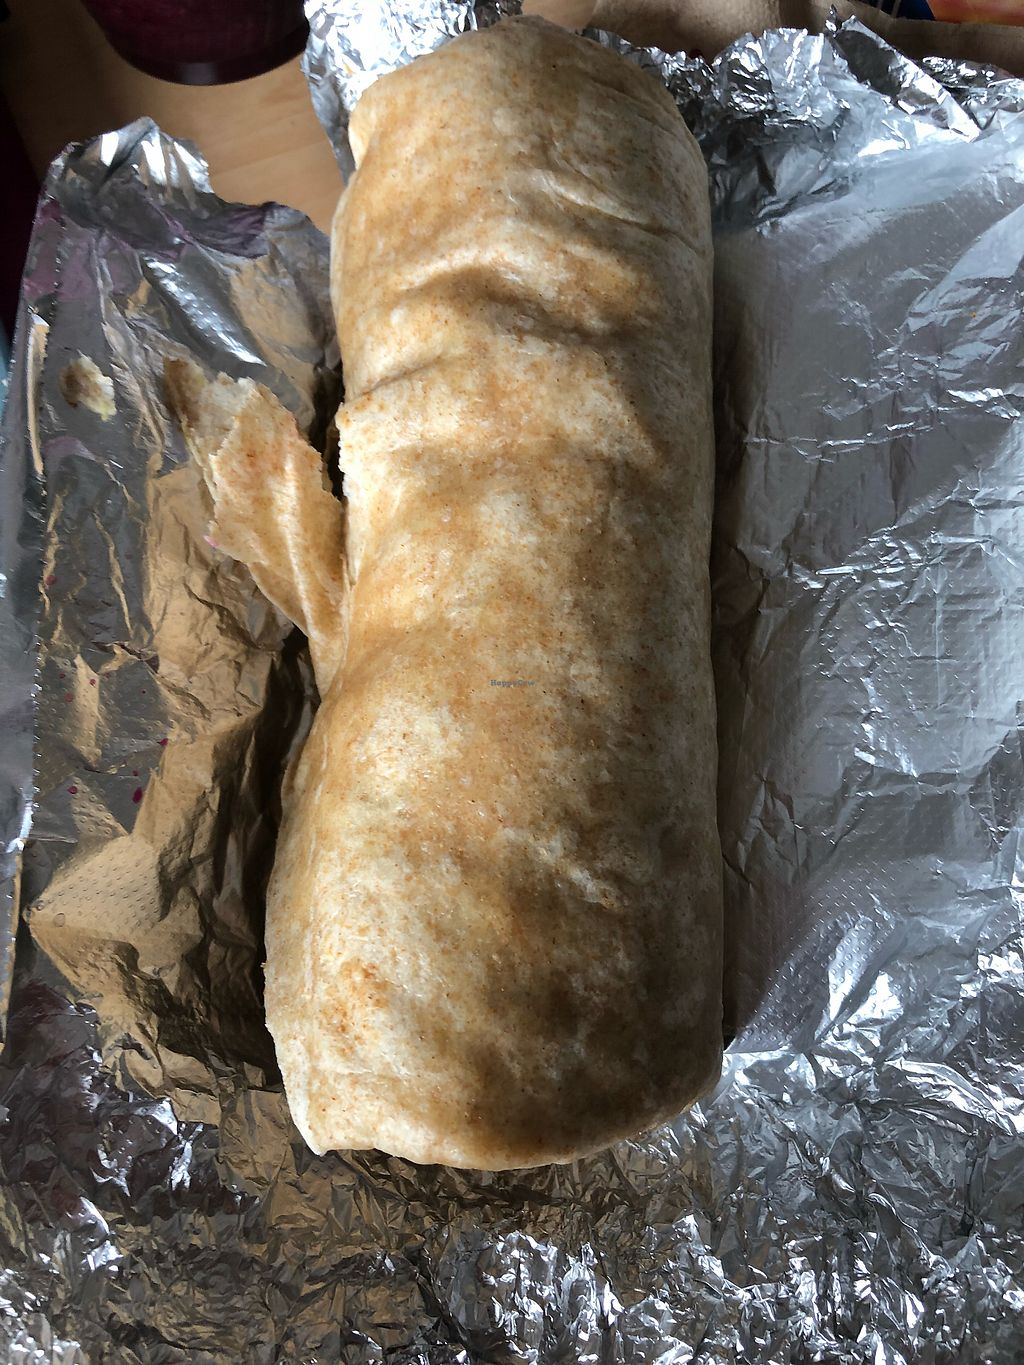 """Photo of Boloco  by <a href=""""/members/profile/Tamy"""">Tamy</a> <br/>Regular sized burrito <br/> March 25, 2018  - <a href='/contact/abuse/image/115566/375614'>Report</a>"""